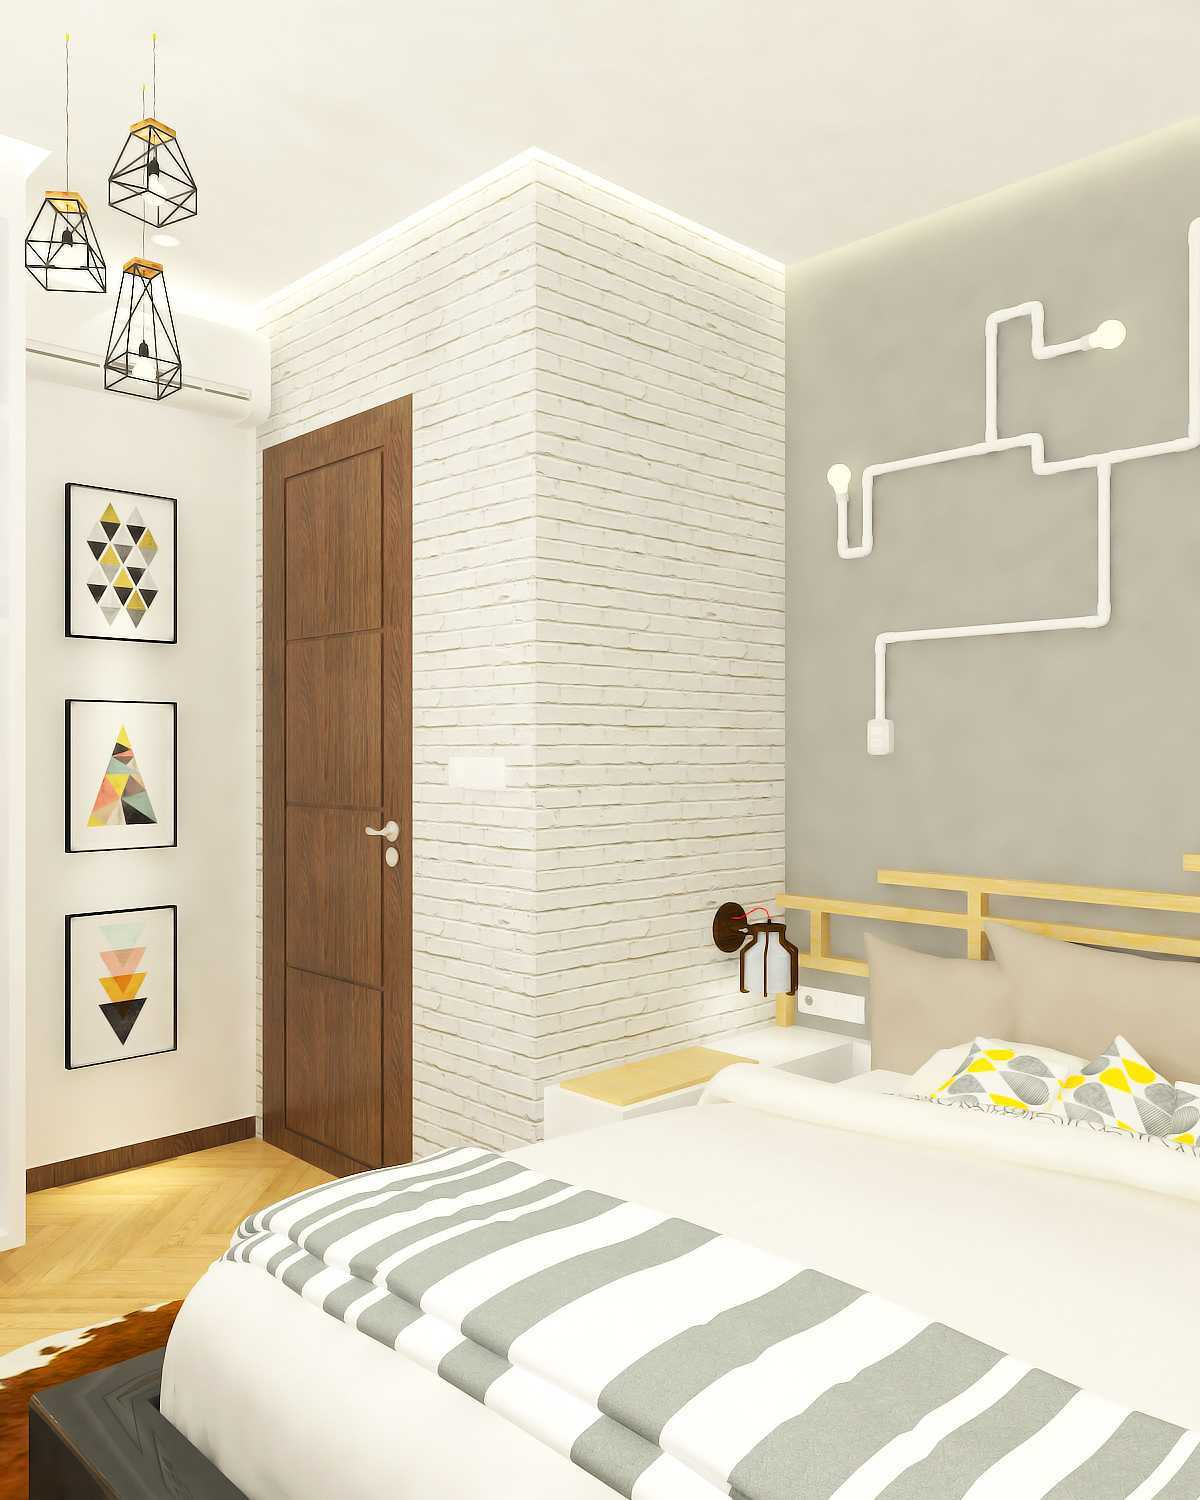 Miv Architects (Ar. Muhammad Ikhsan Hamiru, Iai & Partners) Interior Design Of Boys Bedroom In Private Home Makassar, Sulawesi Selatan, Indonesia Makassar, Sulawesi Selatan, Indonesia Bedroom Kontemporer 9845